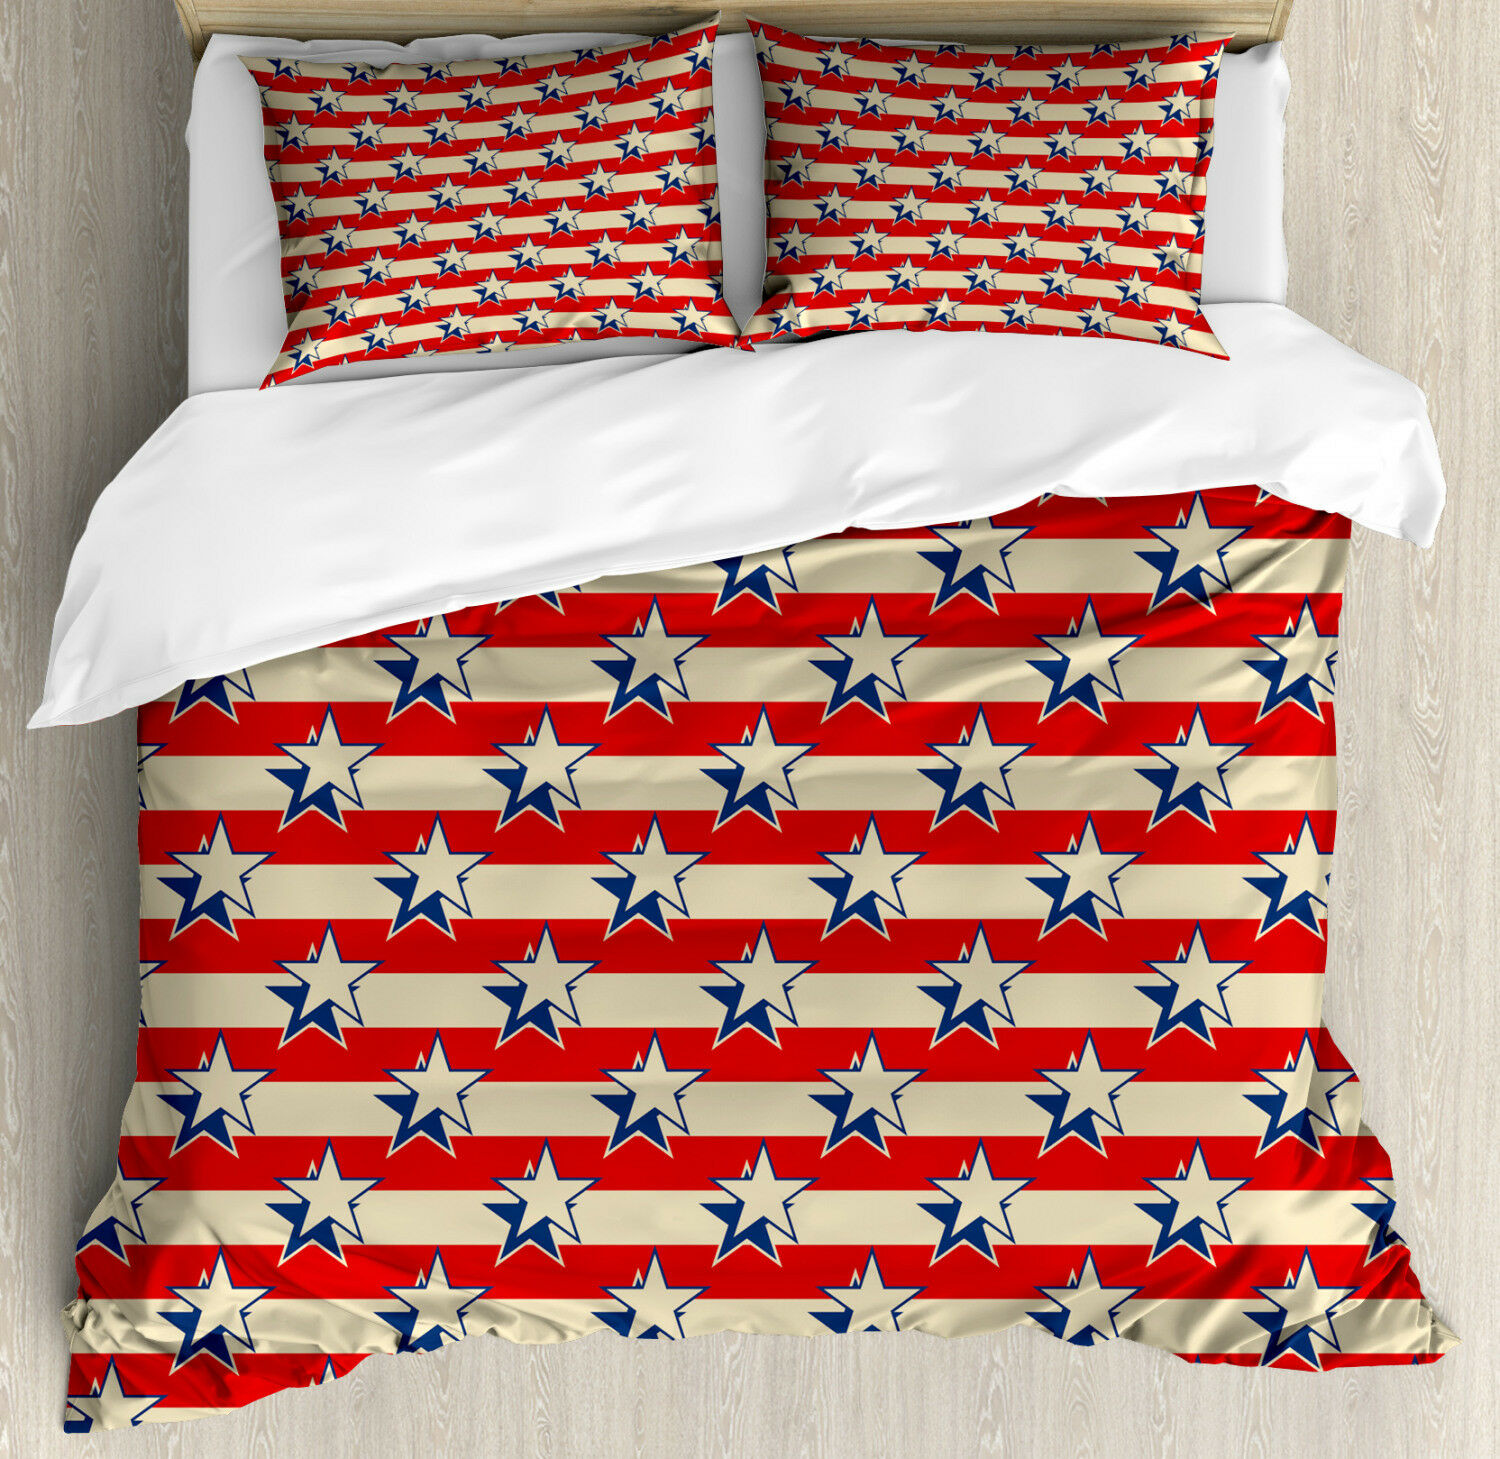 USA Duvet Cover Set with Pillow Shams Retro Independence Poster Print